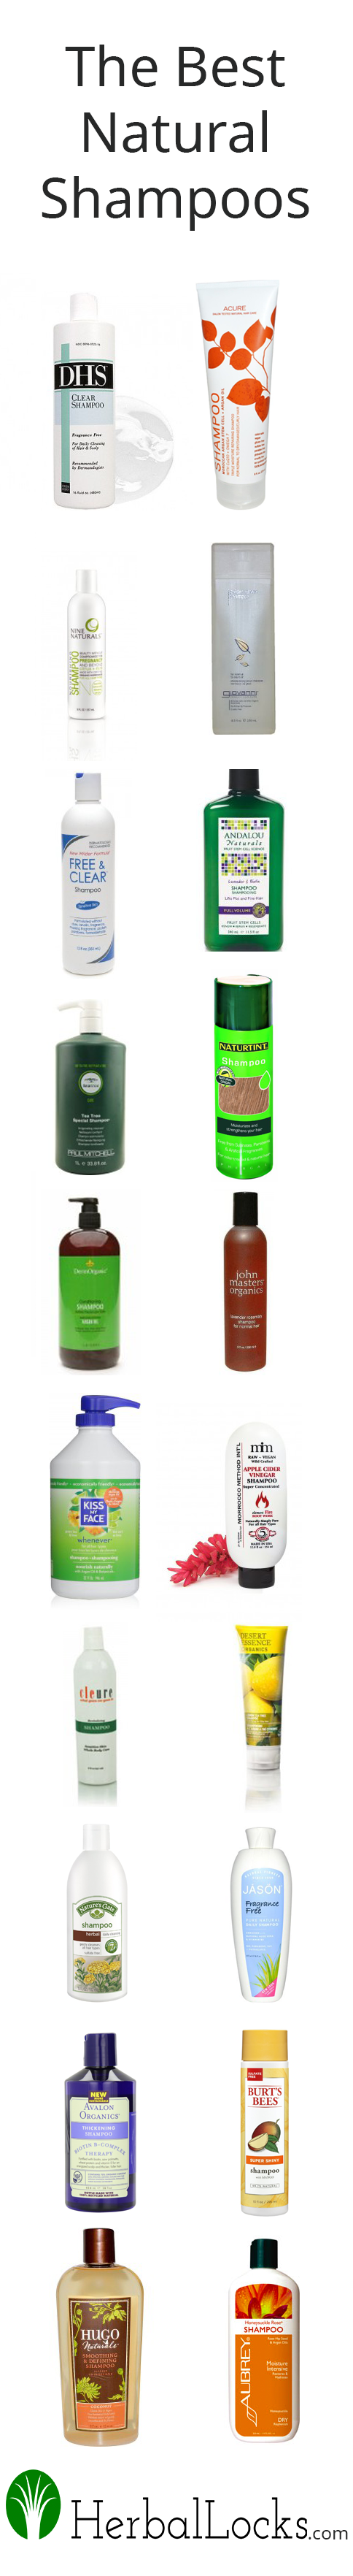 The Best Natural Shampoos - http://www.HerbalLocks.com